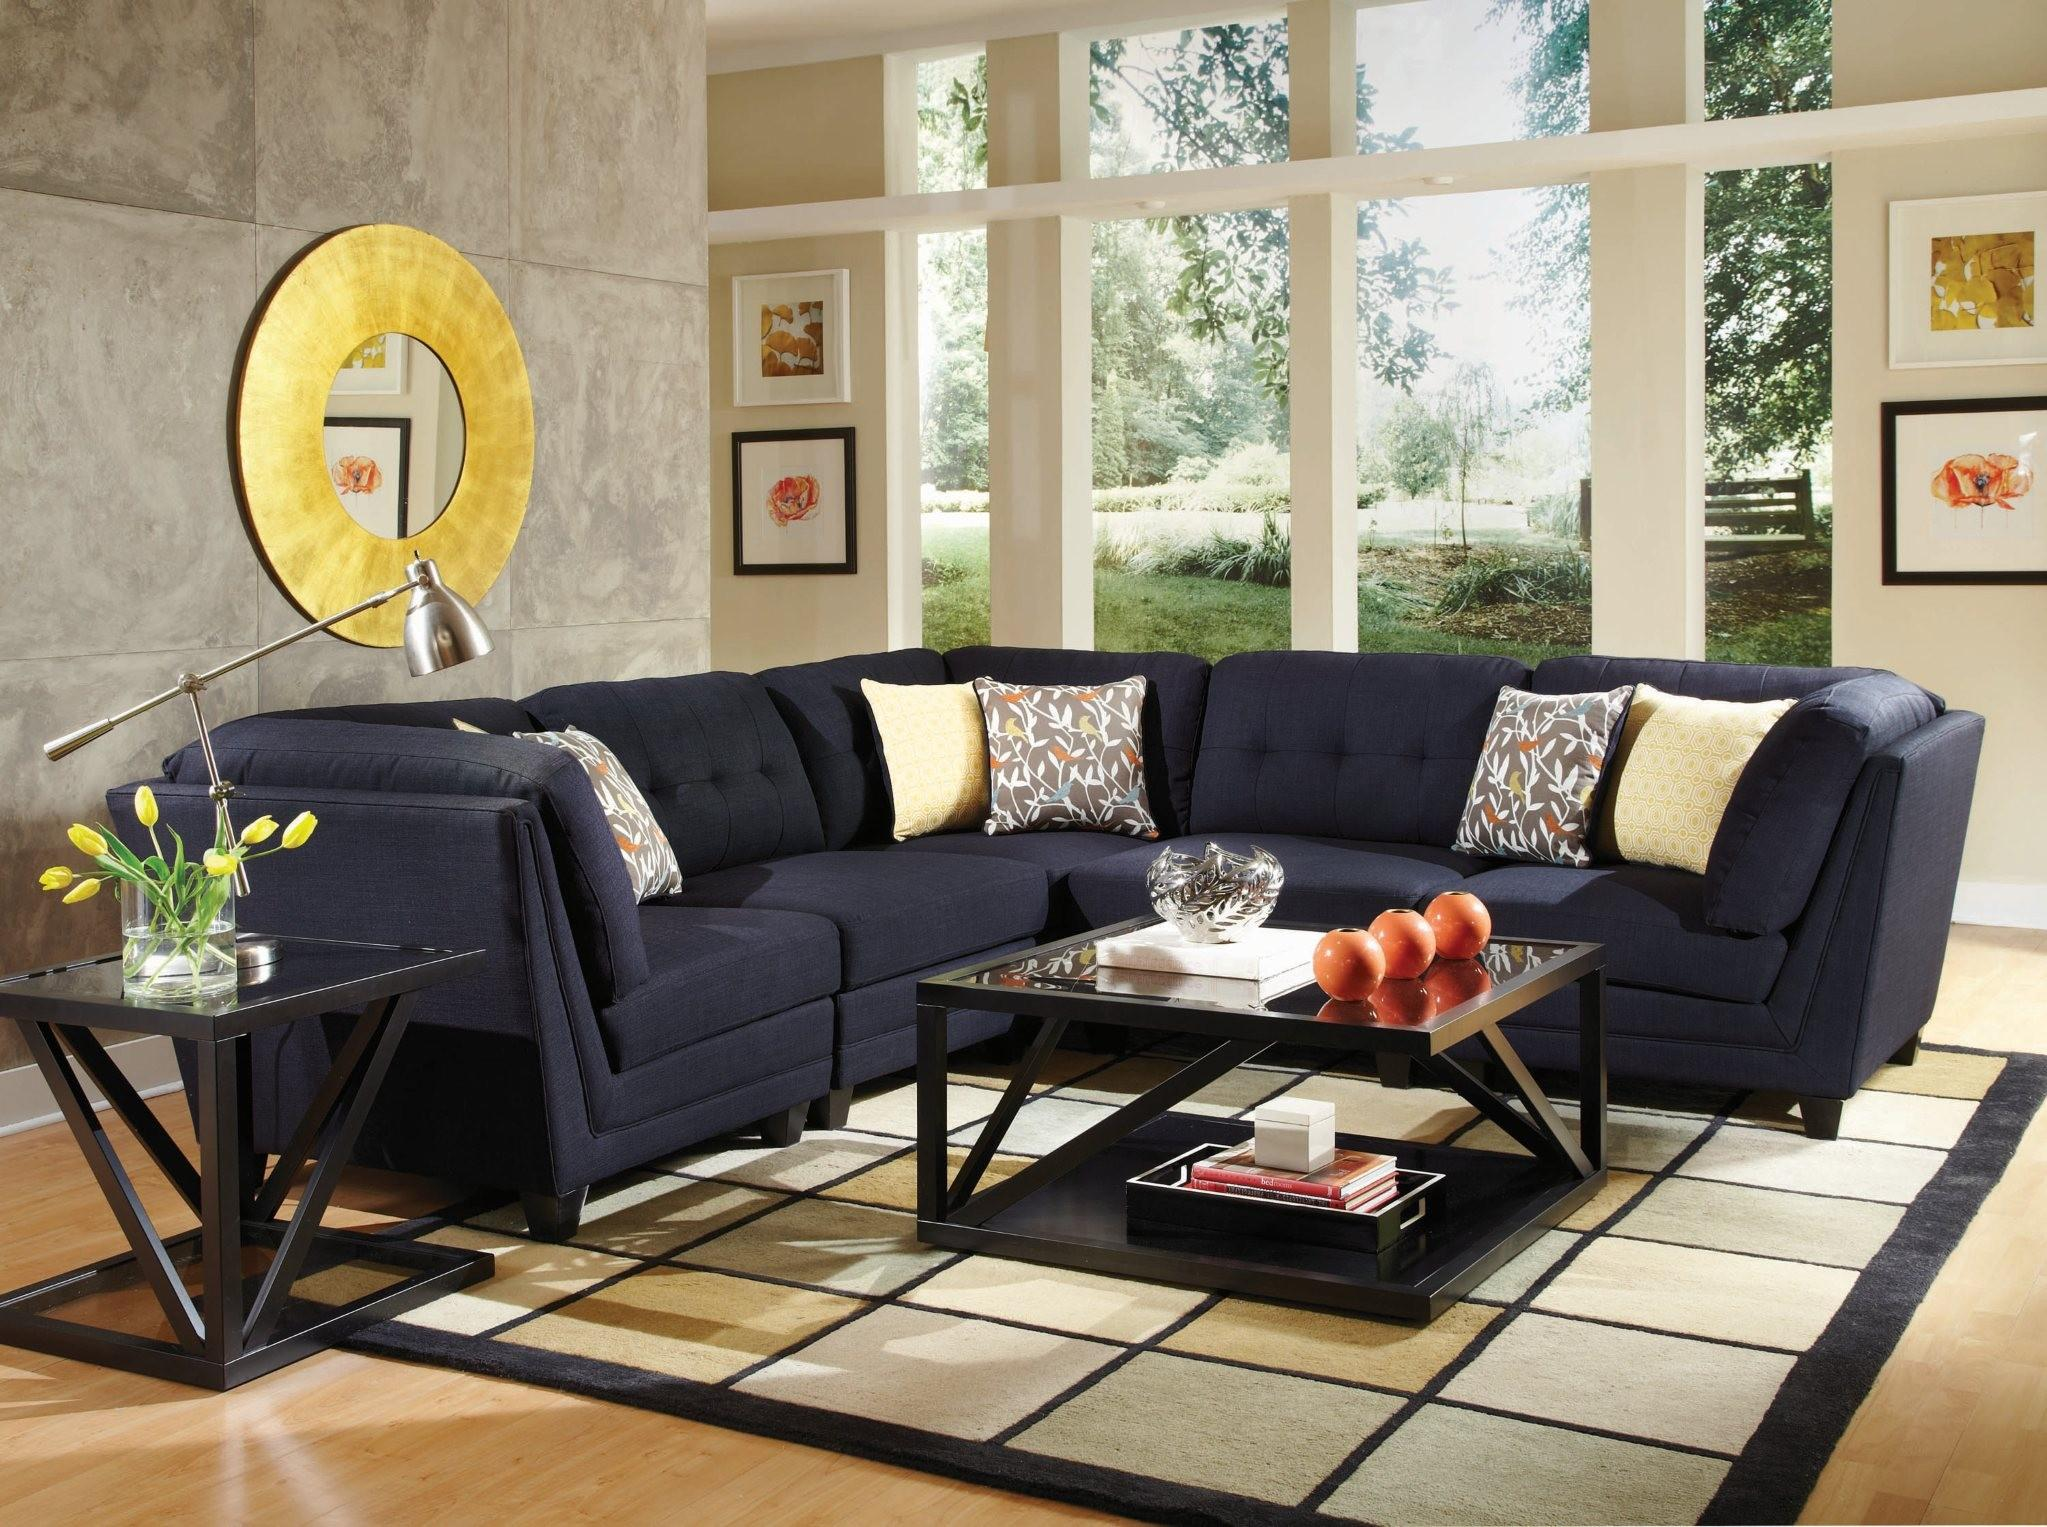 Coaster Keaton Transitional Five Piece Sectional Sofa with Tufting - Coaster Fine Furniture : coaster sectional sofa - Sectionals, Sofas & Couches